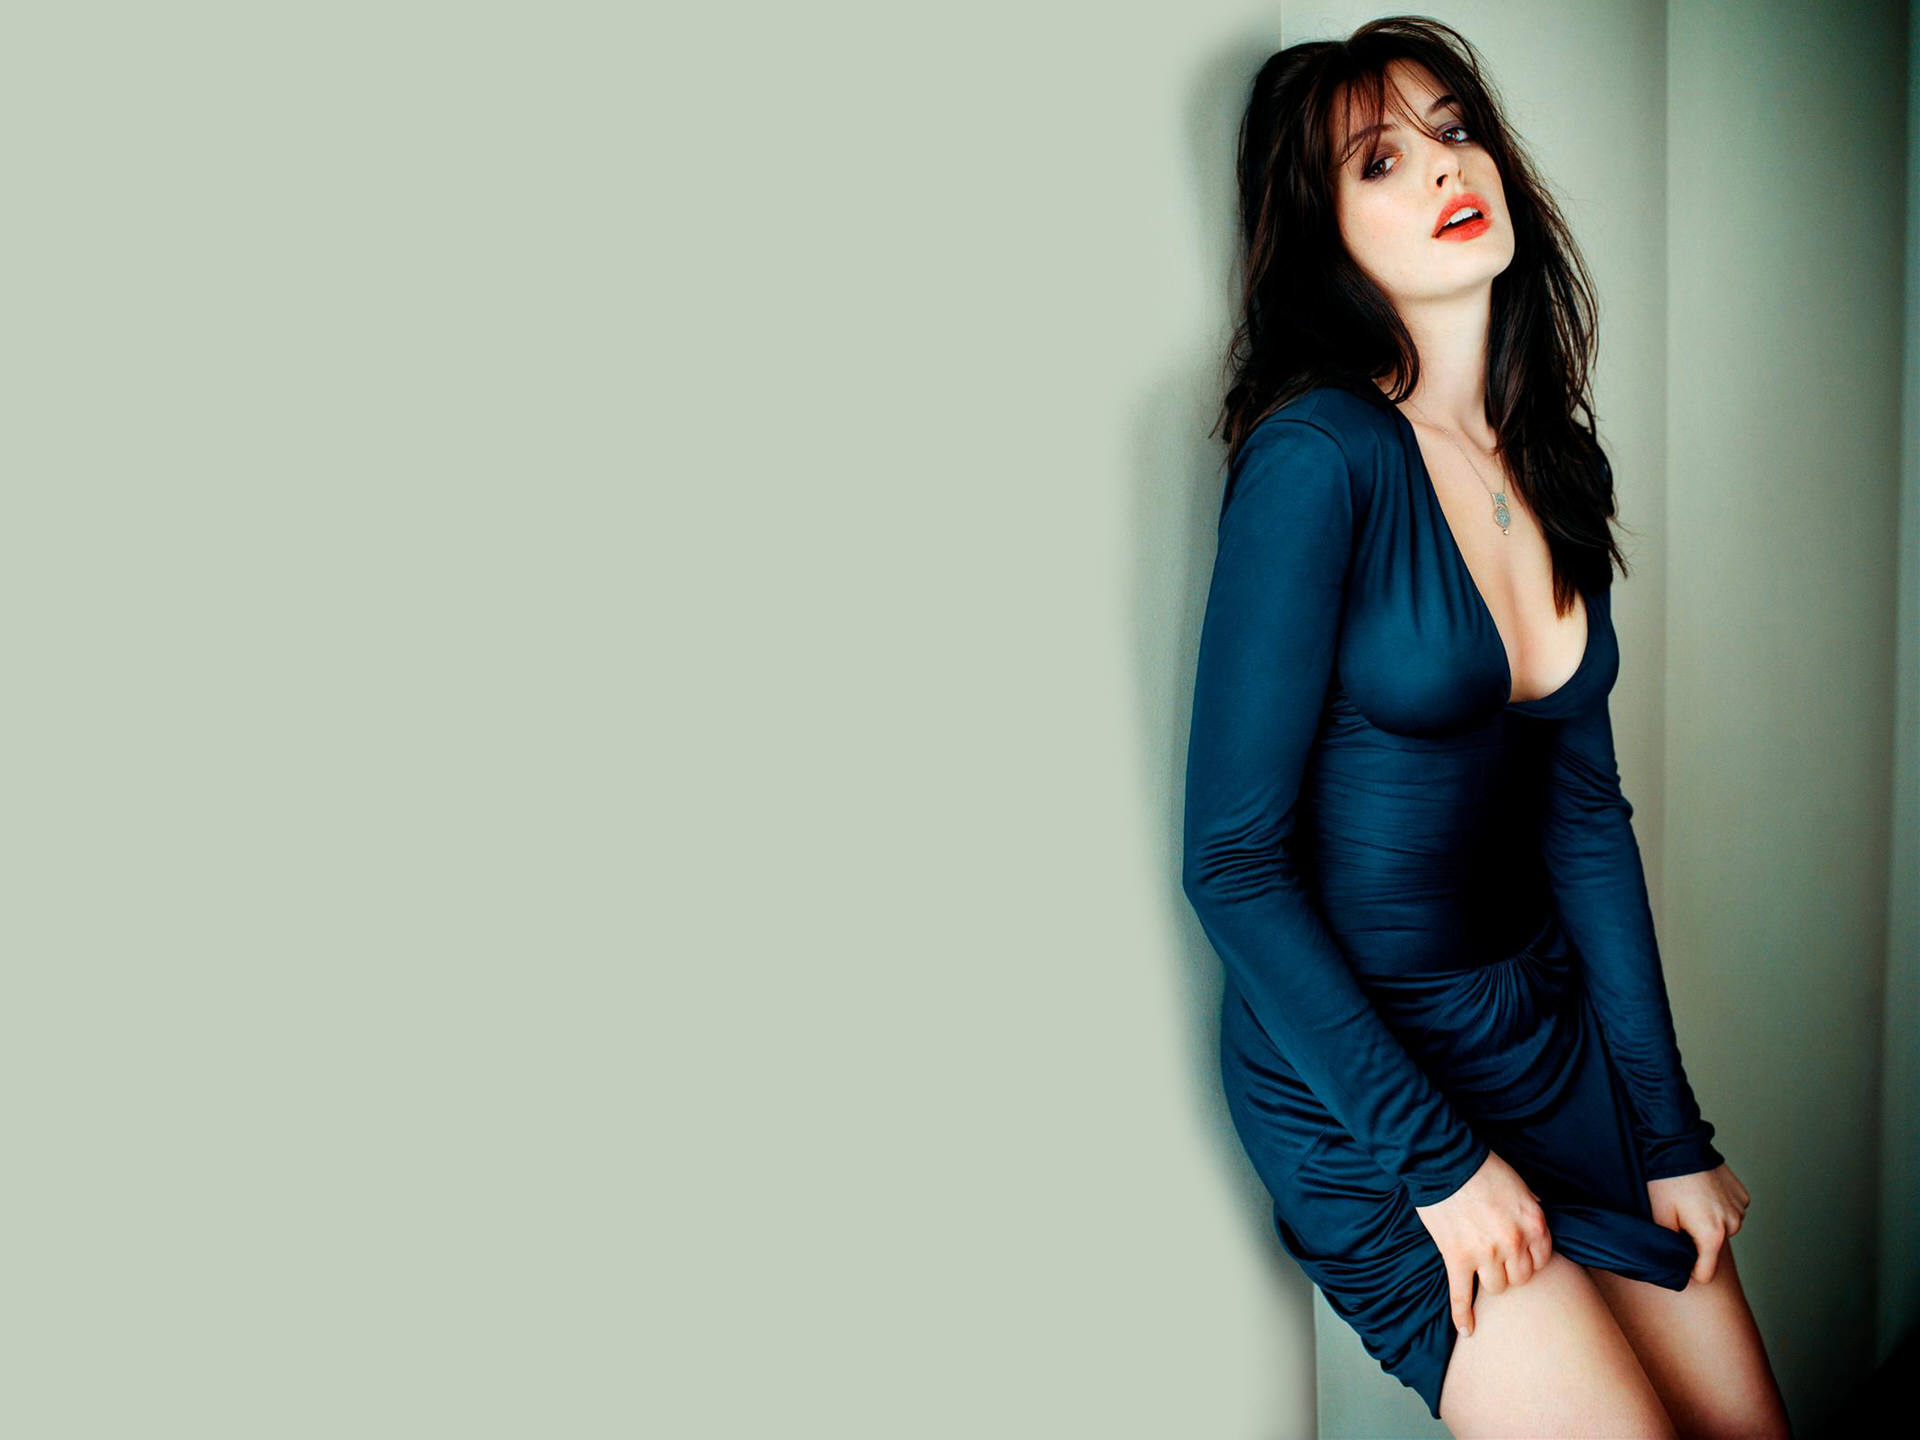 Anne Hathaway Hot Wallpaper - Wallpaper, High Definition, High Quality ... Anne Hathaway